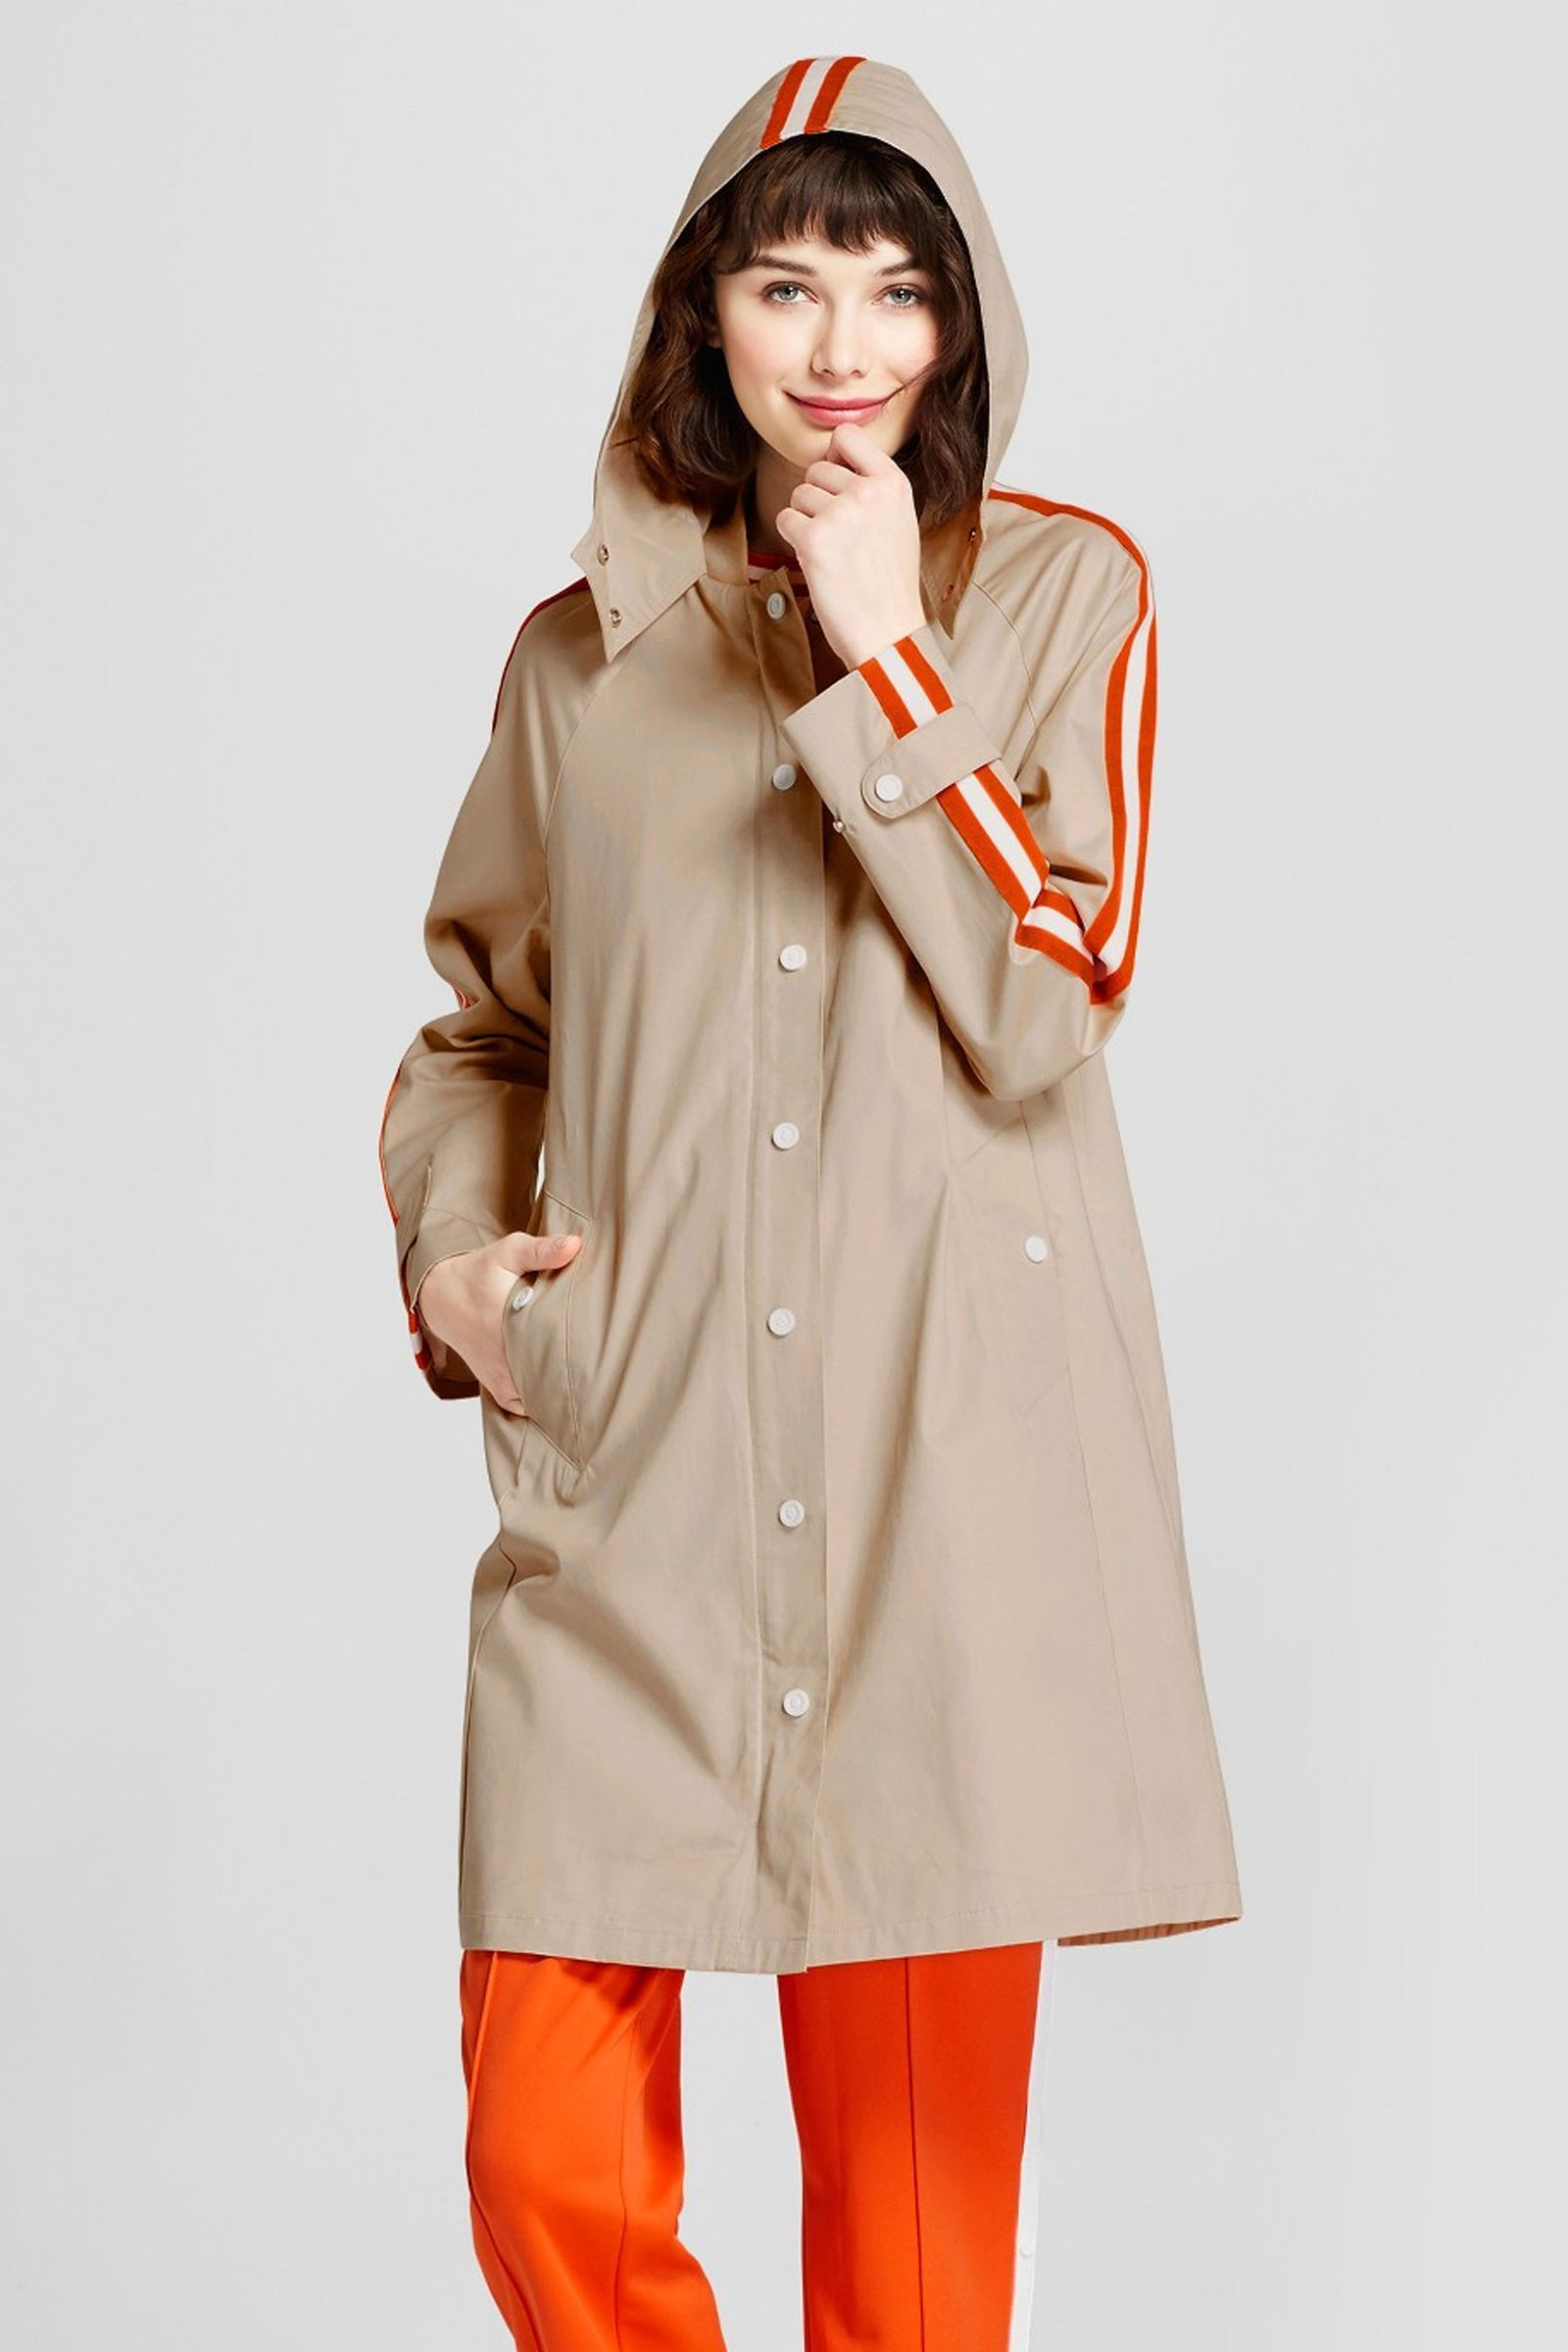 2a332c1eac1 Women s Hooded Trench Coat - TownandCountrymag.com